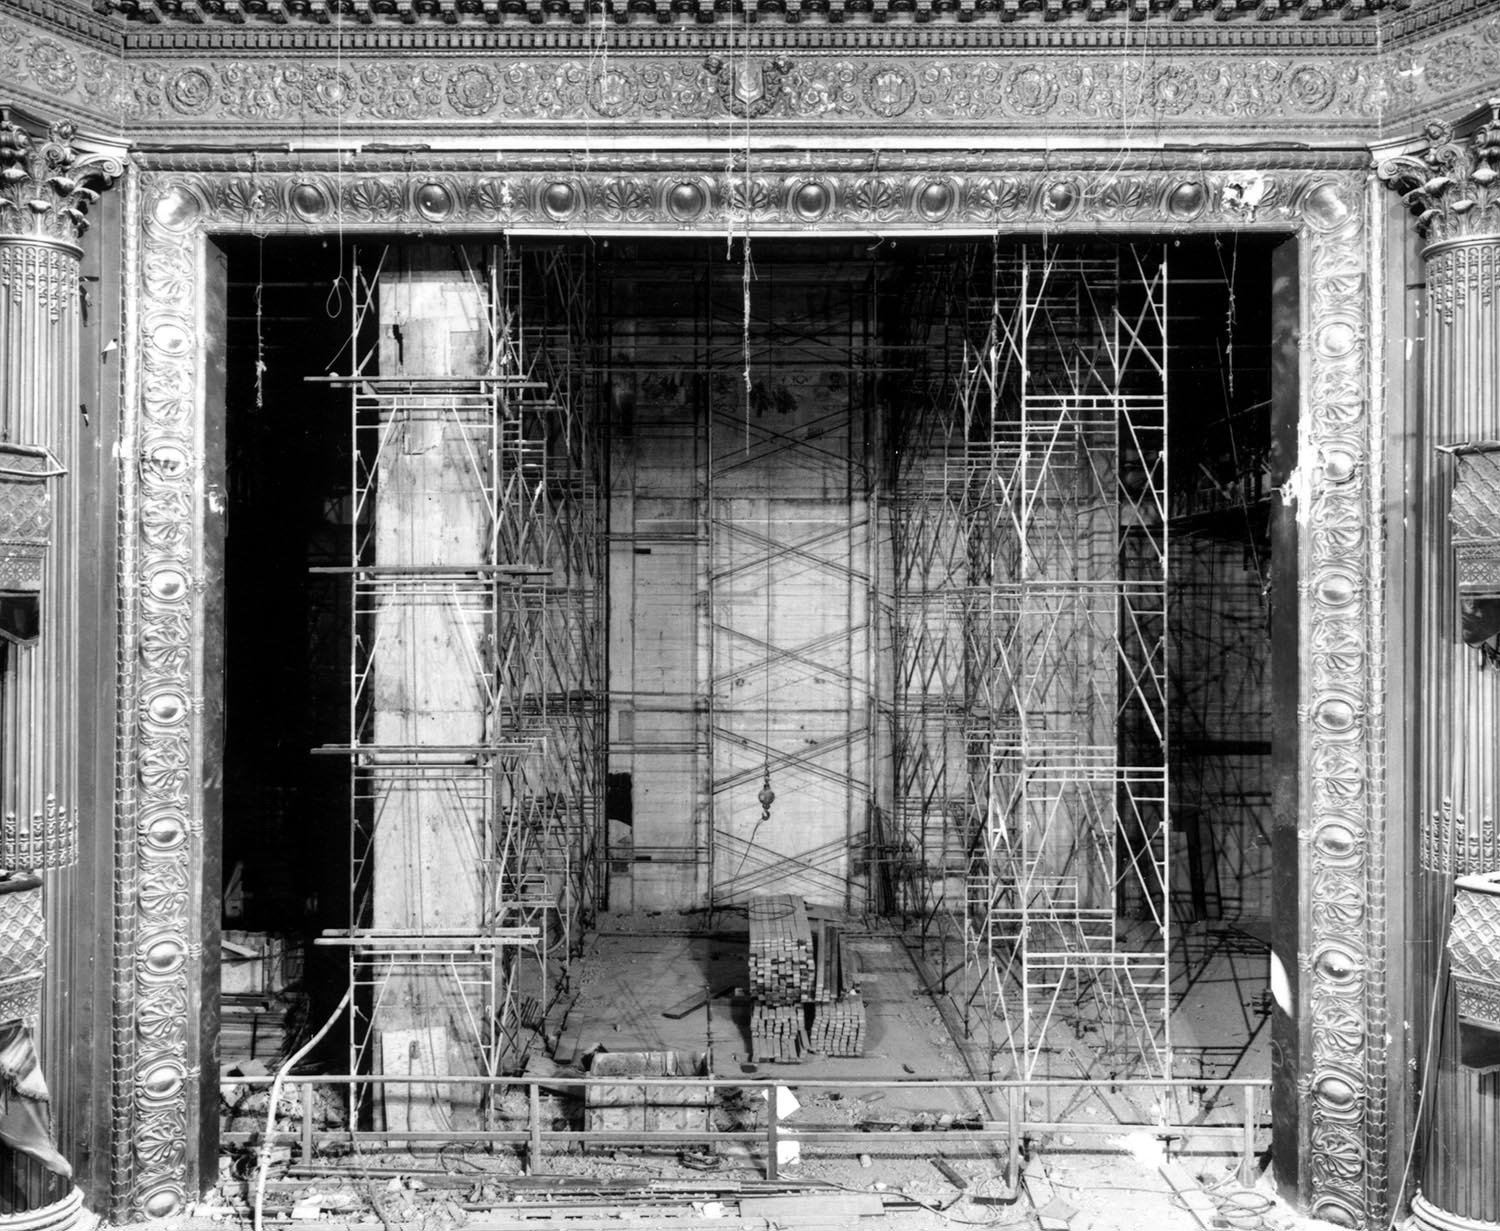 Interior view of lavish Geary Theater in San Francisco, CA with scaffolding and construction materials during renovation